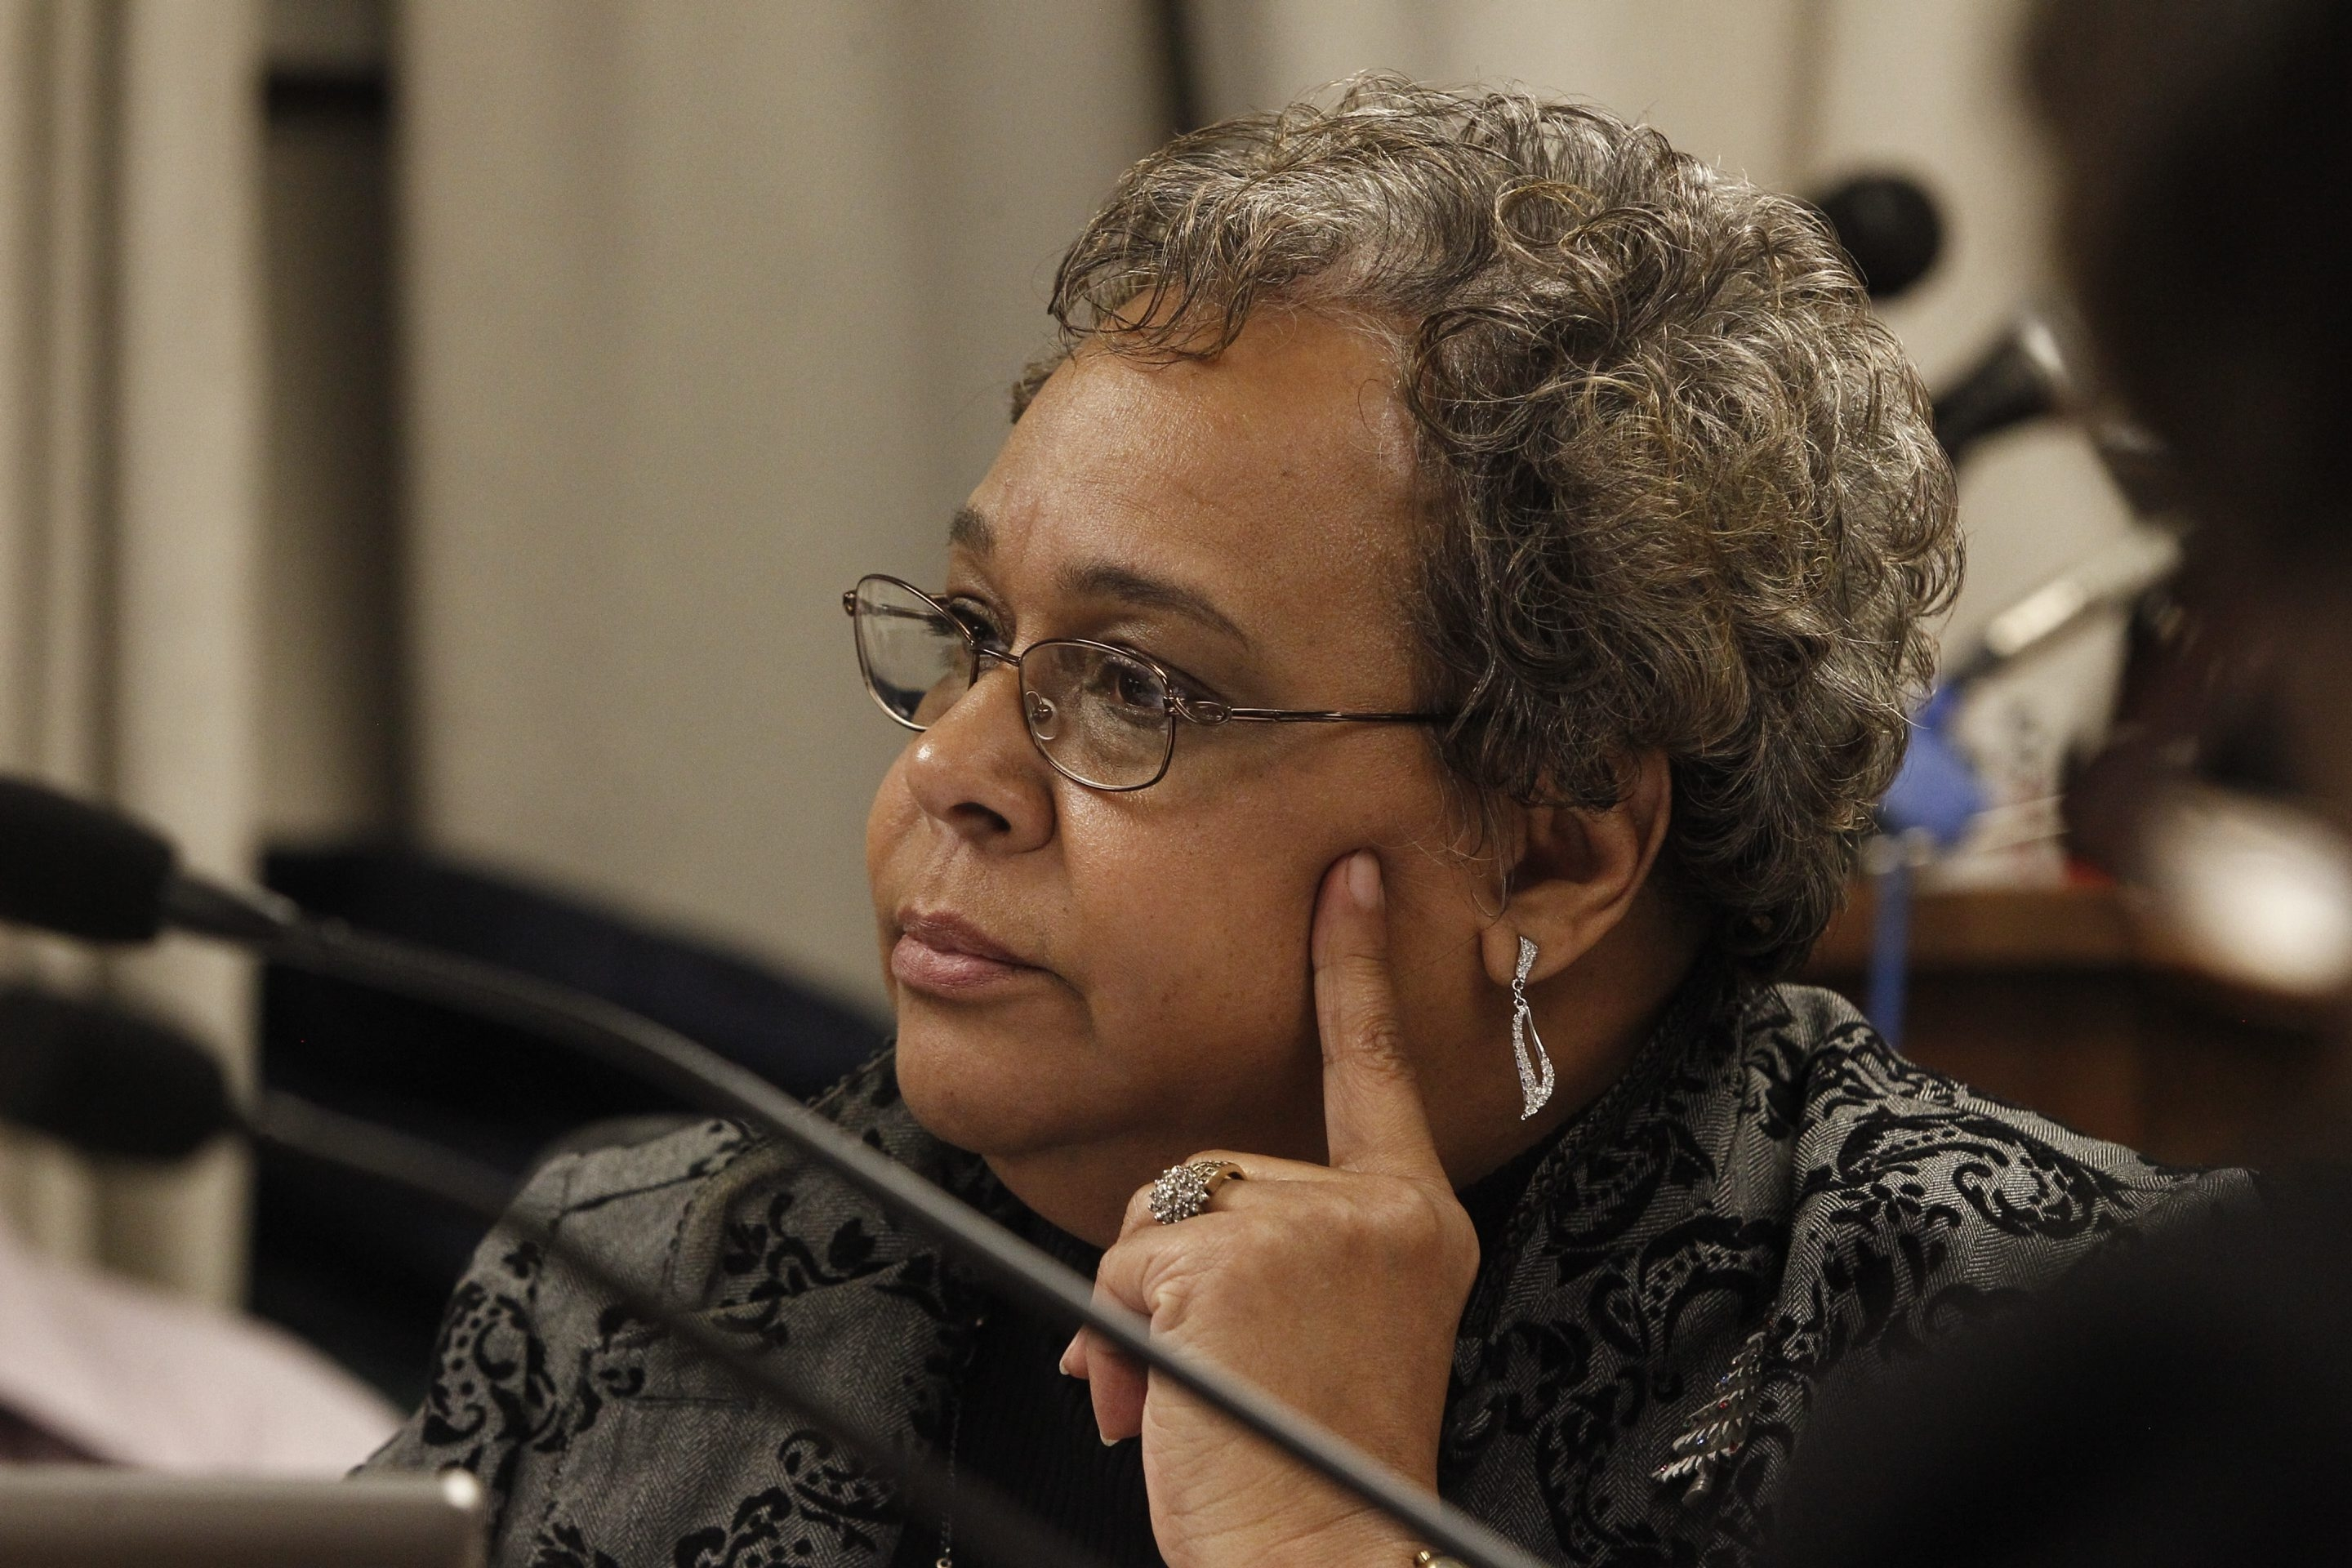 { FOR LOCAL } School Board Member Rosalyn Taylor at a  important School Board meetings of the year, when the board votes on turnaround plans for seven low-performing schools at Buffalo City School Board Meeting at City Hall   in Buffalo, N.Y.  Wednesday, Dec. 14, 2011.    {Photo by John Hickey / Buffalo News}